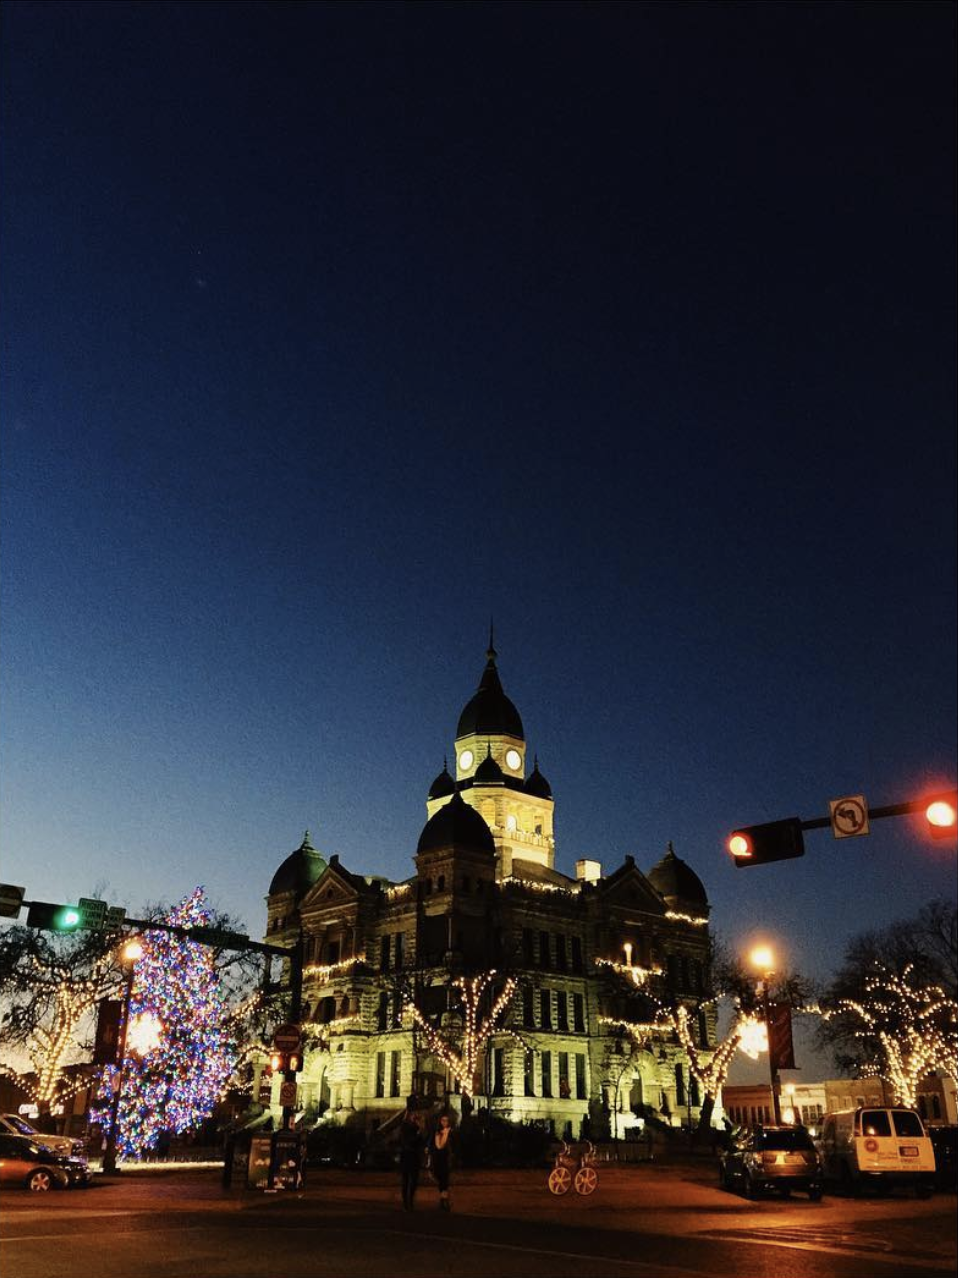 @andrewbwelchphoto with a shot of the square at Christmastime.